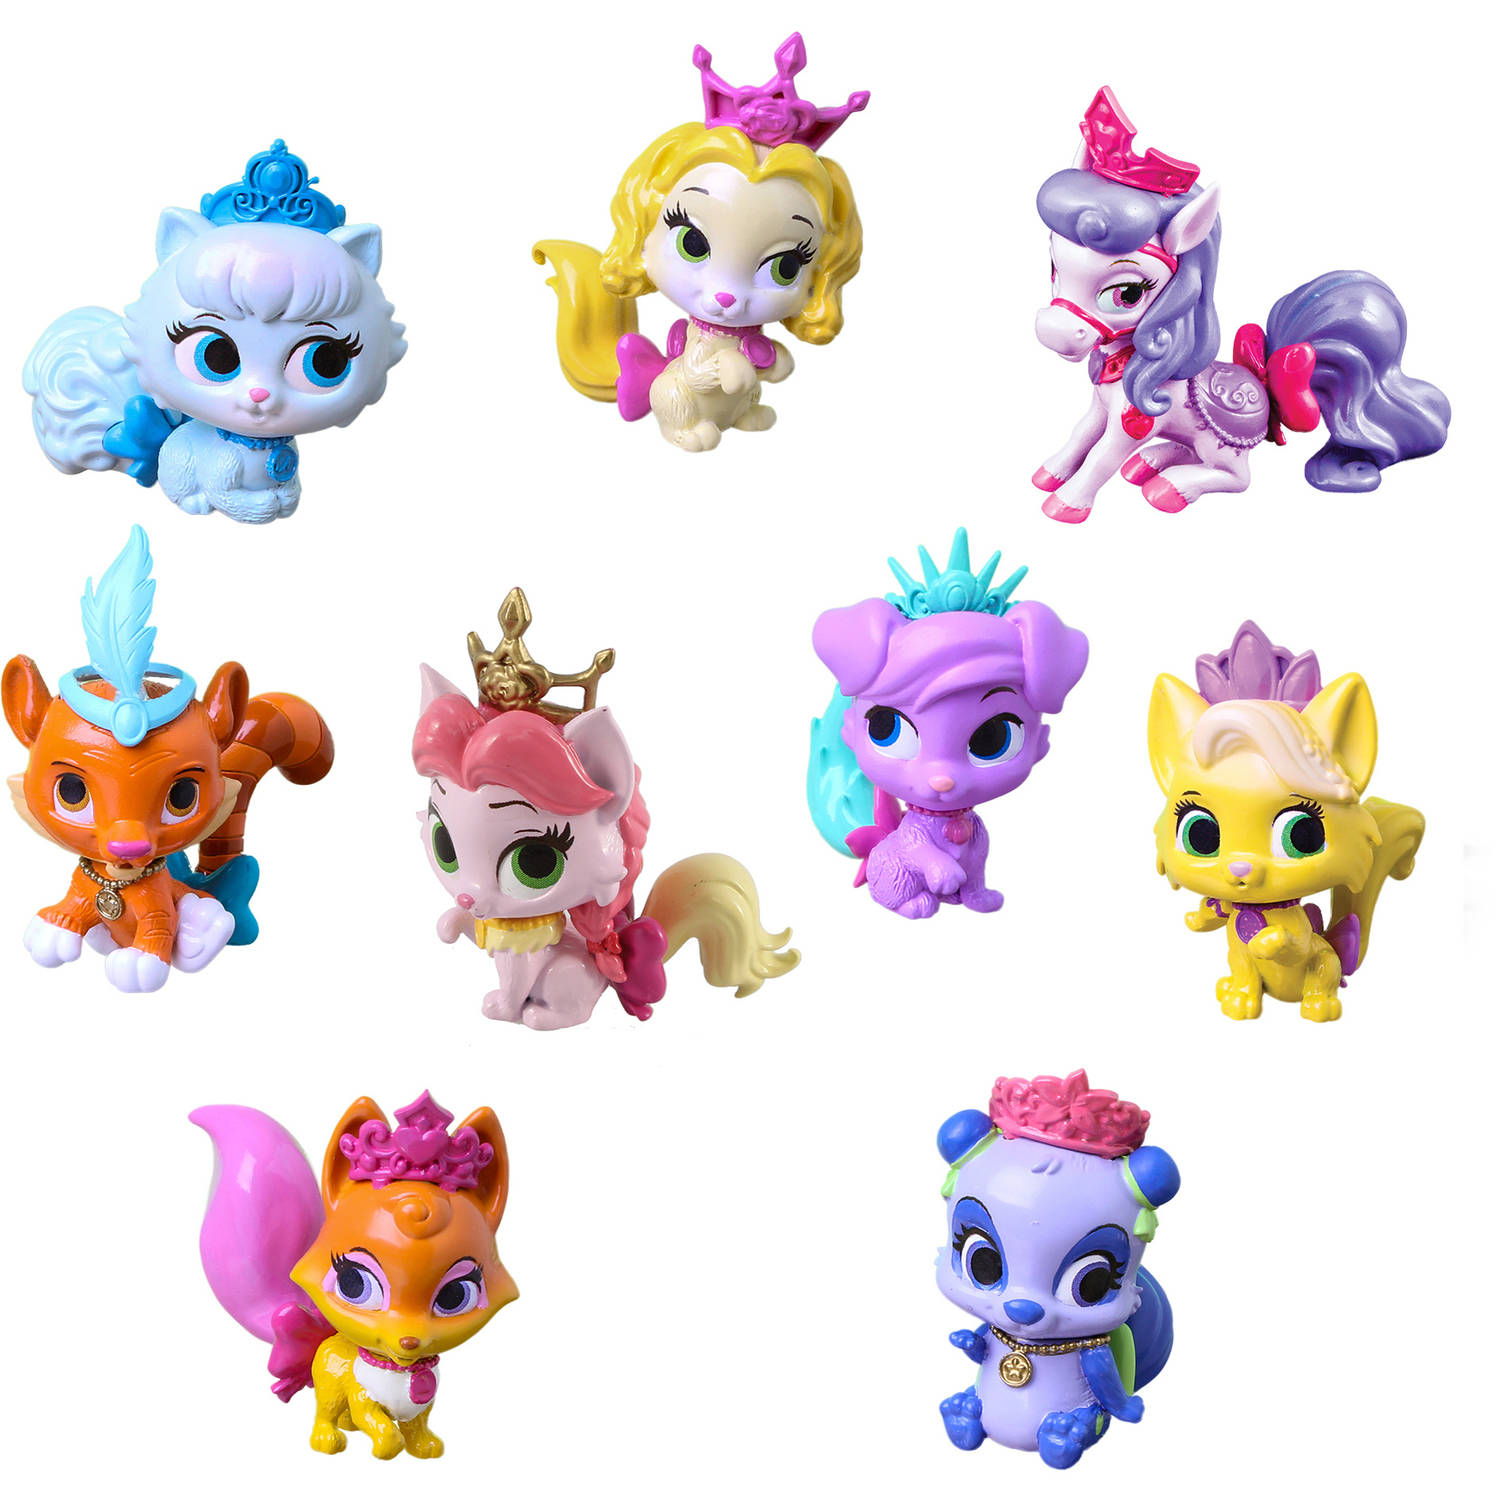 "Disney Princess Palace Pets, 1.5"" Mini Pet Figures"